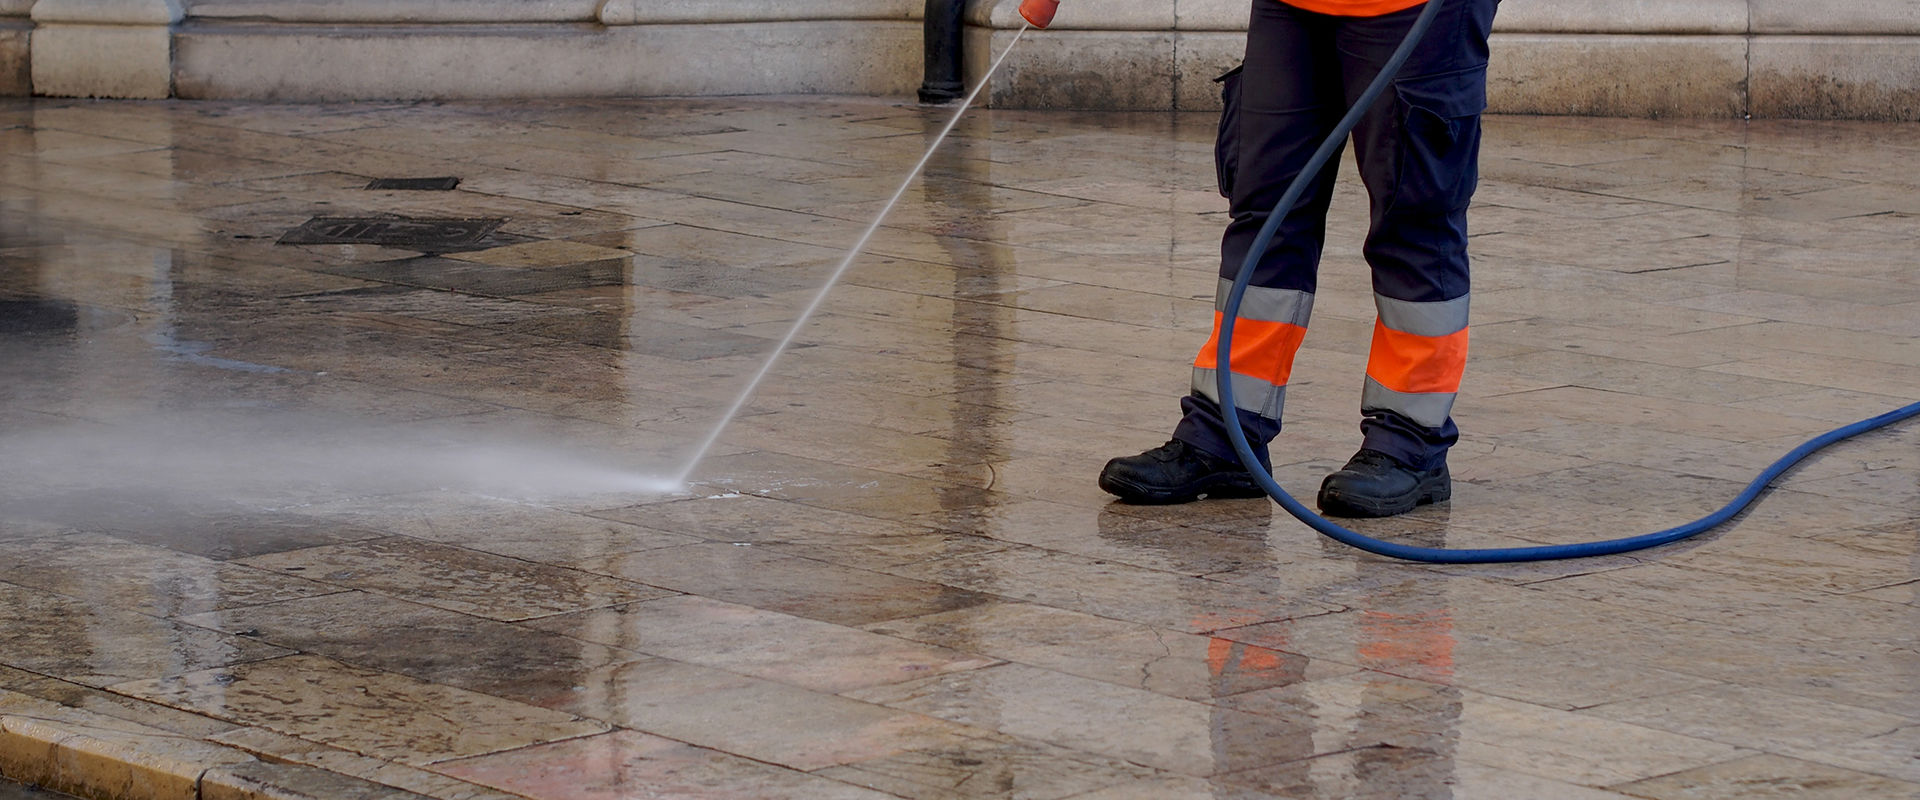 Commercial Pressure Washing Glasgow, Scotland